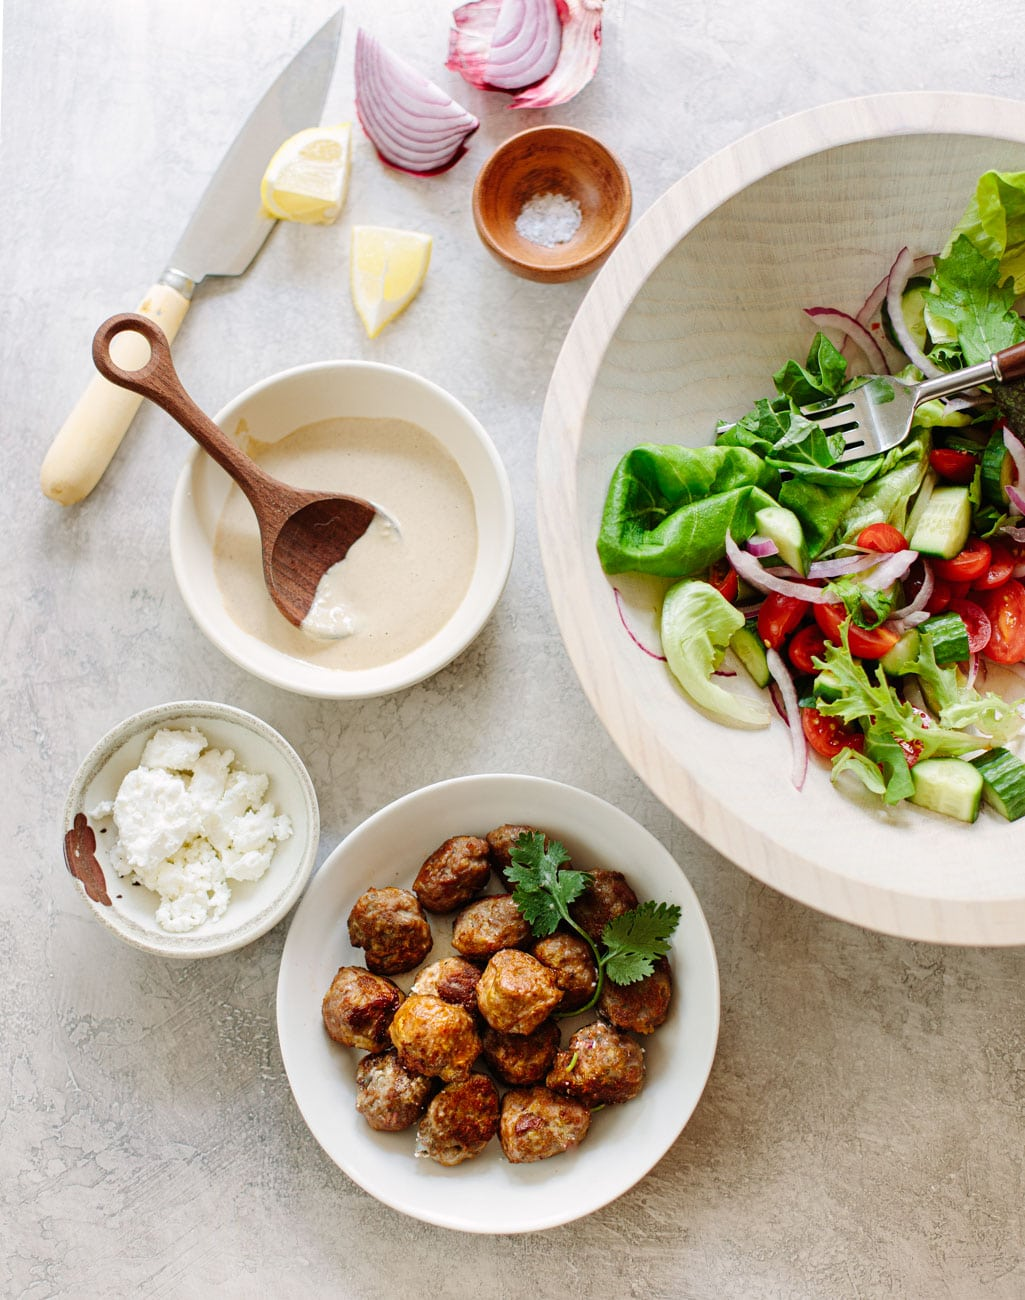 Gyro Salad with Chicken Meatballs